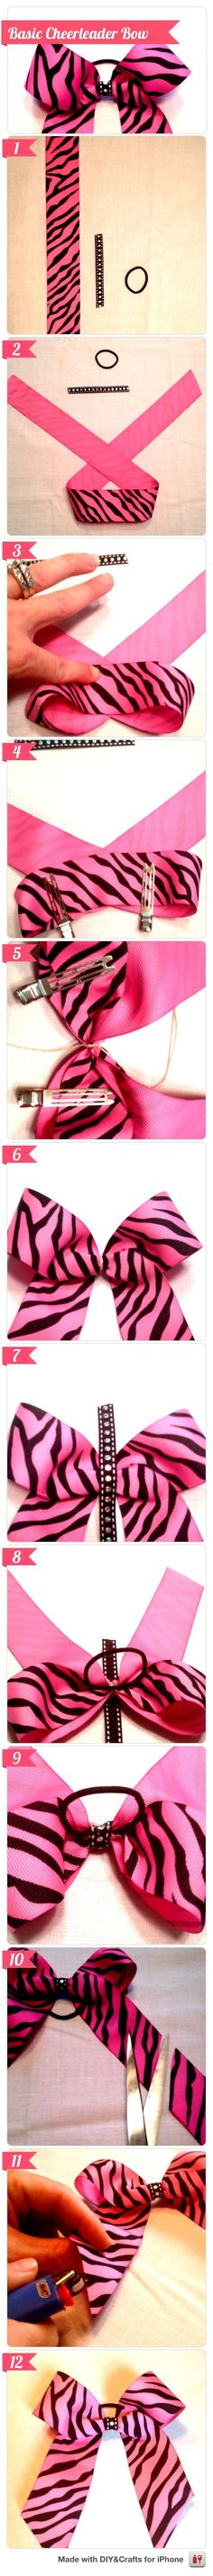 Basic cheerleader Bow #DIYCraftsEditor #DIY #iOS